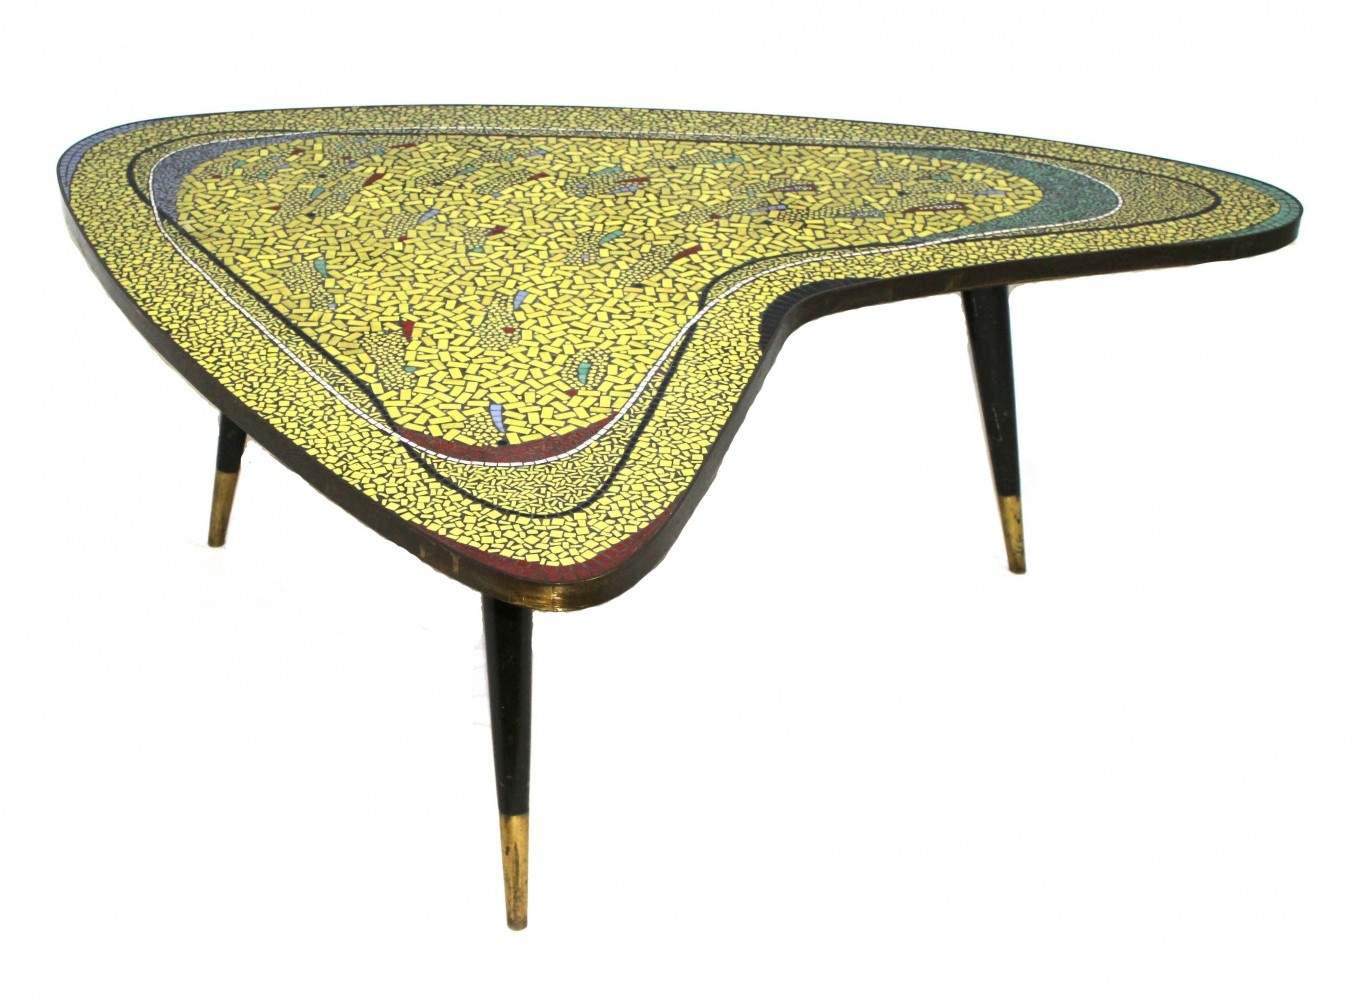 Boomerang coffee table by berthold mller oerlinghausen for boomerang coffee table by berthold mller oerlinghausen for berthold mller mosaikwerksttten 1950s geotapseo Choice Image